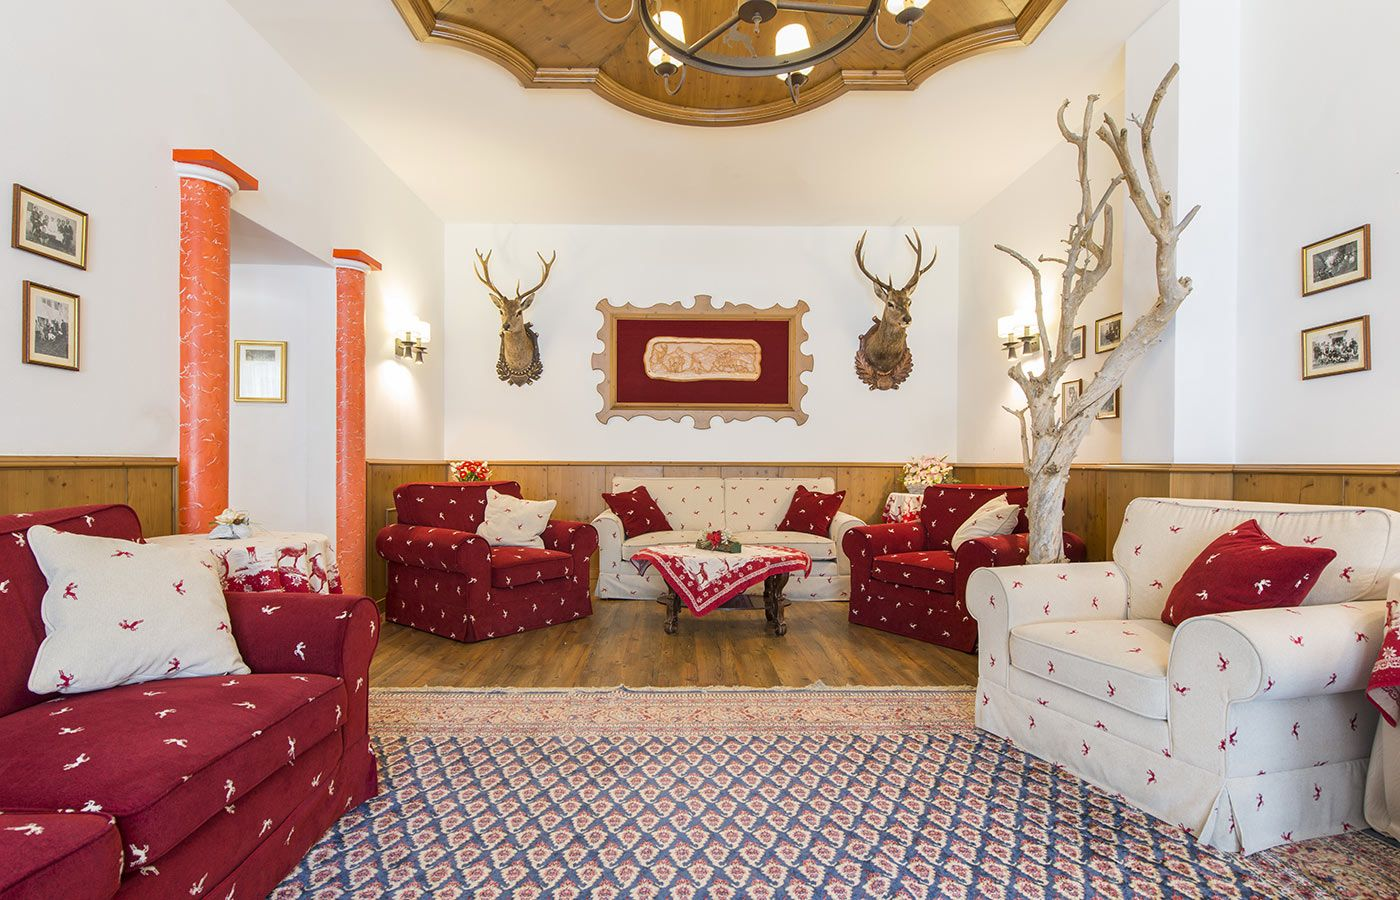 Traditional alpine furniture and decoration at Hotel Alpino